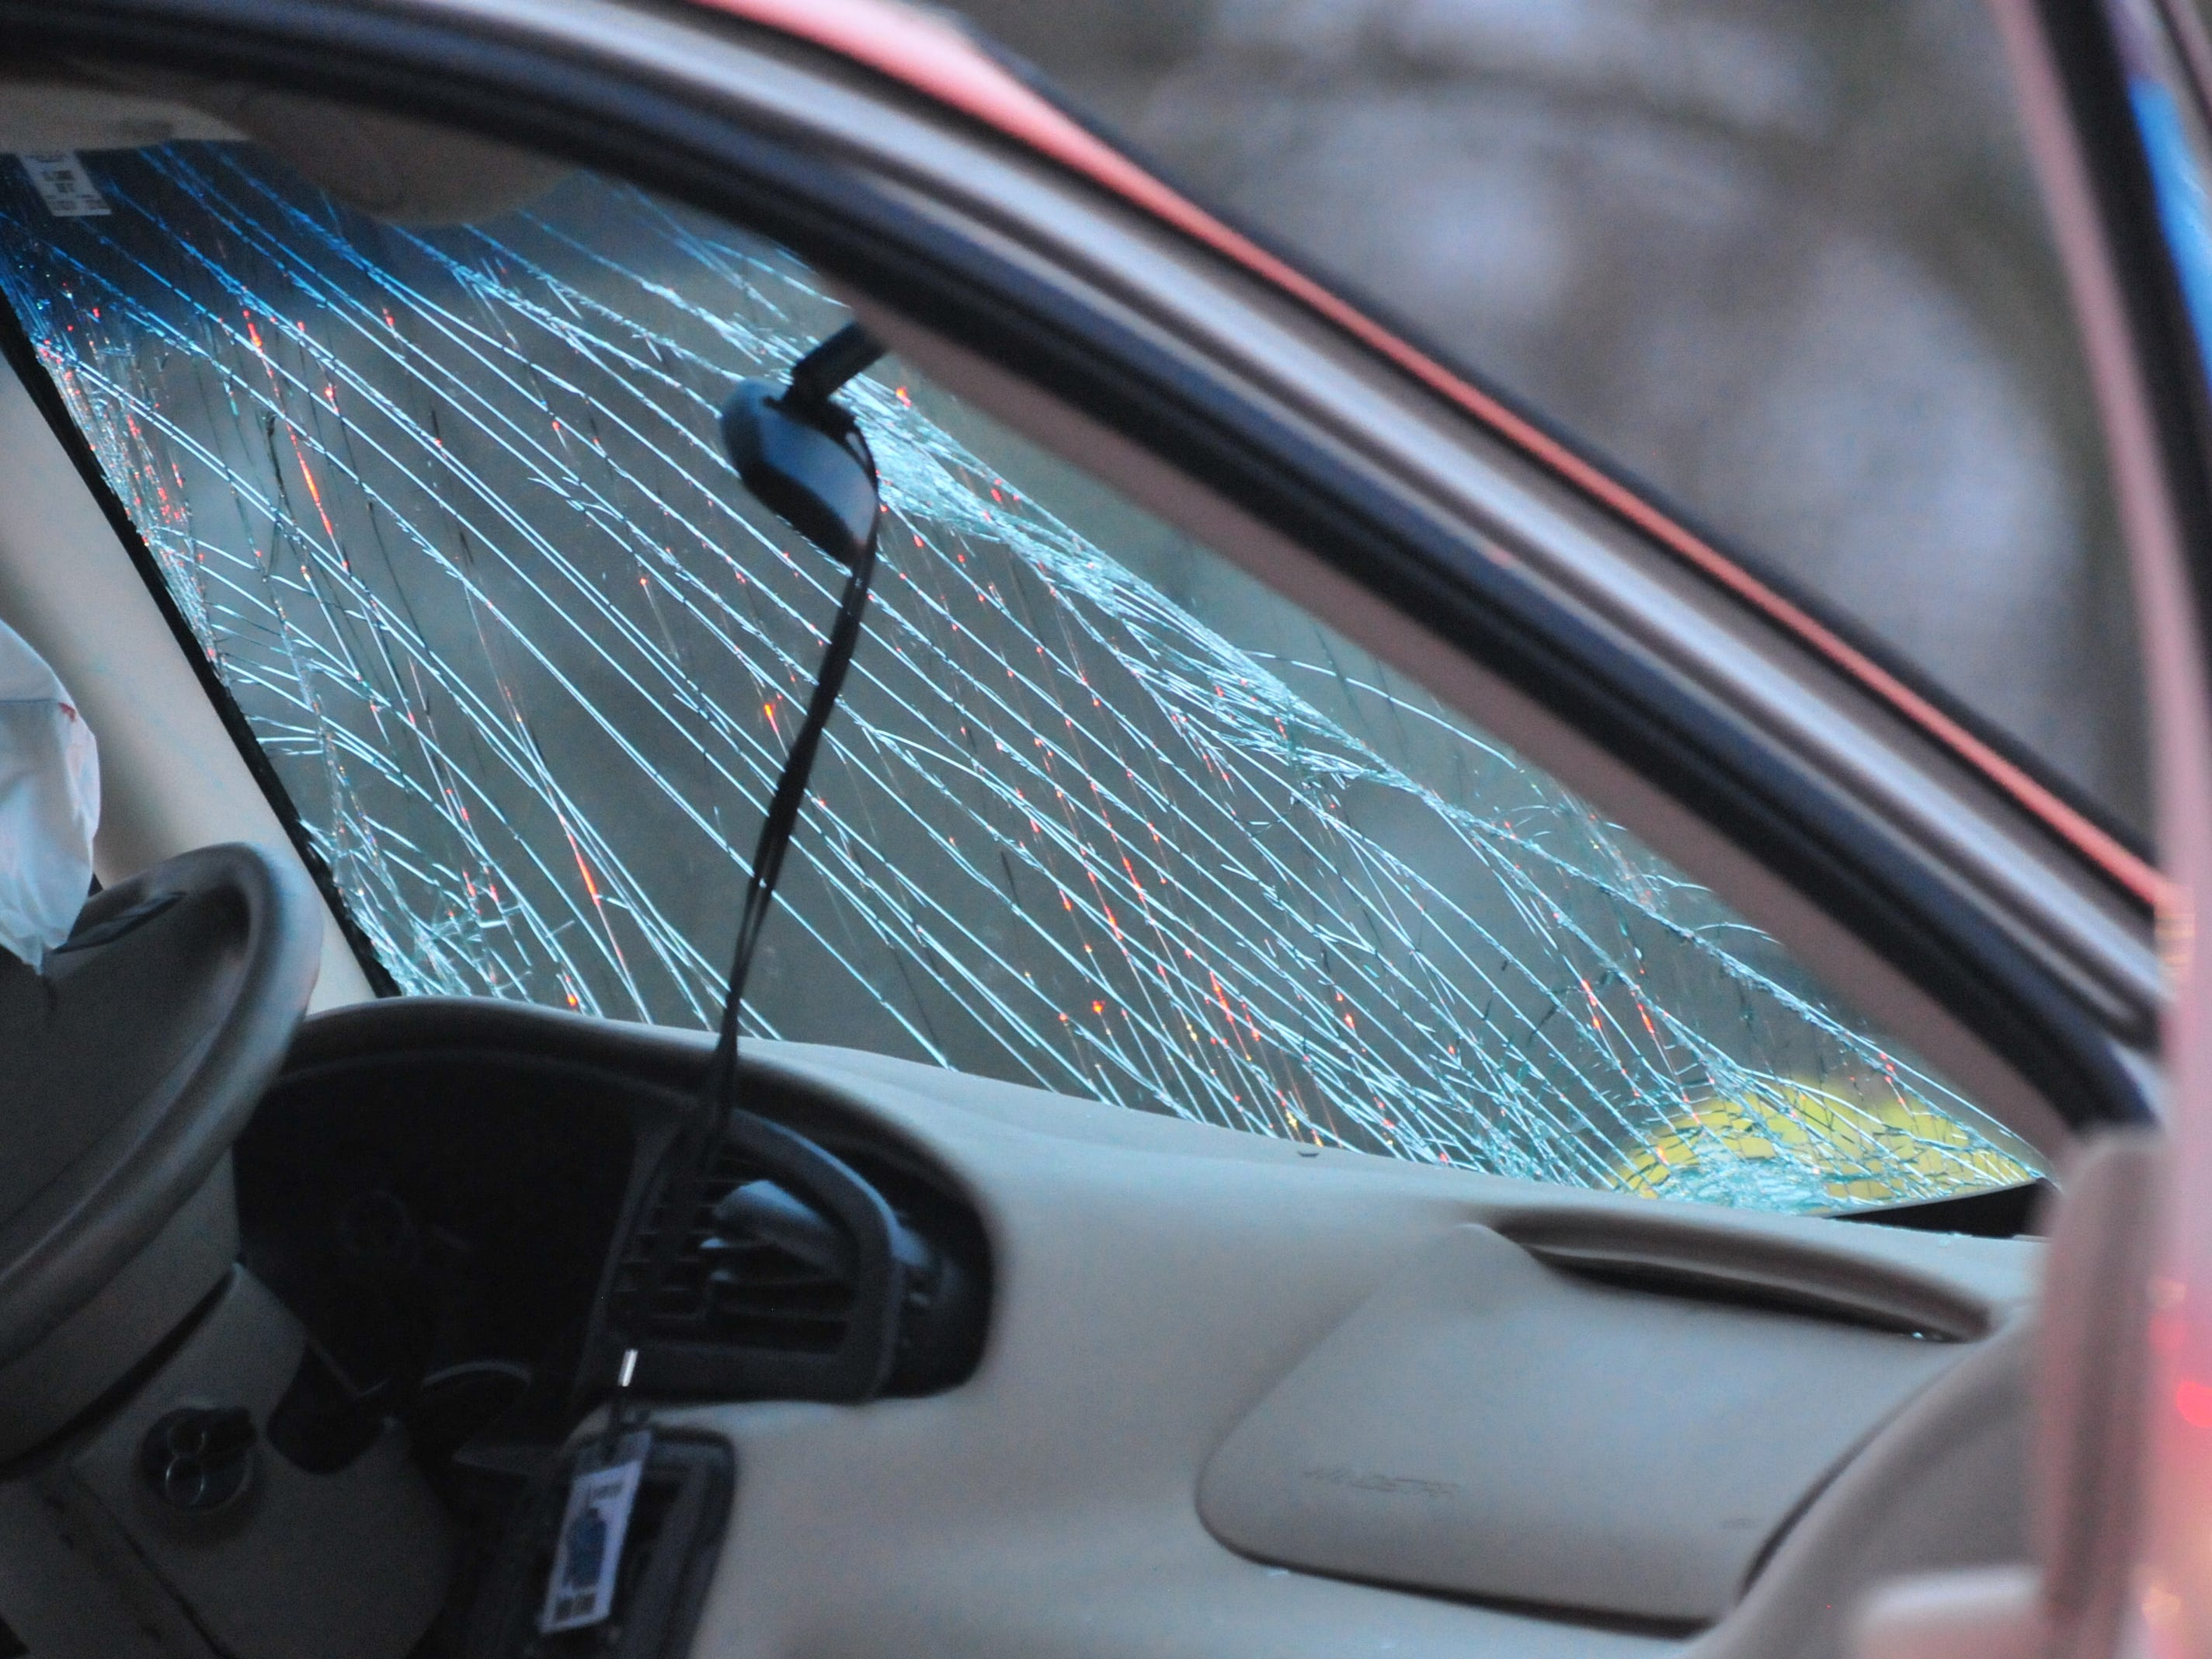 The windshield of a Ford van shows damage following an accident Tuesday on Salisbury Road.